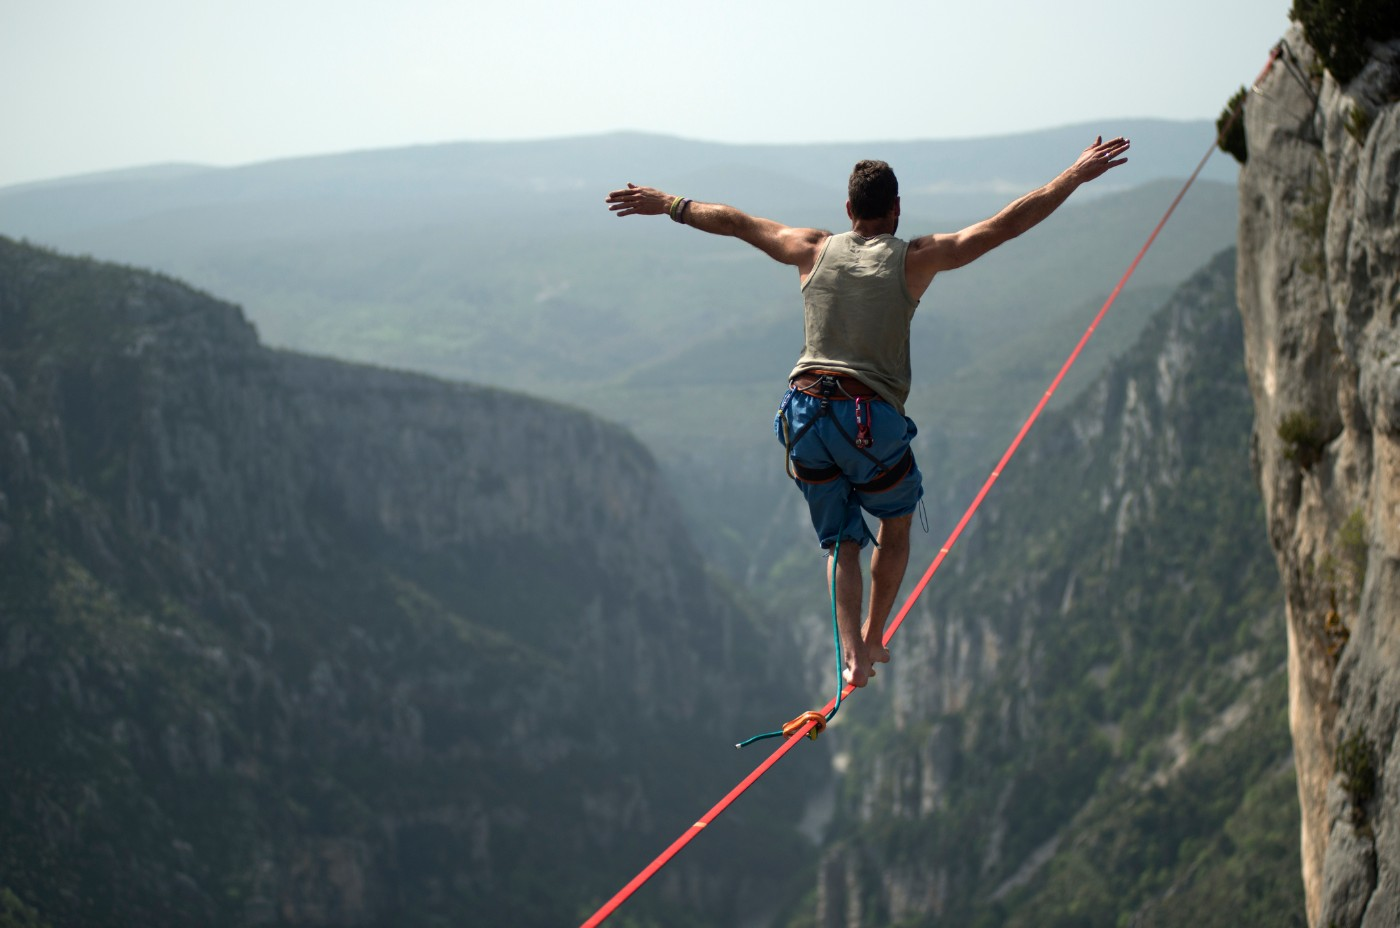 https://tickertapecdn.tdameritrade.com/assets/images/pages/md/Balancing on a tightrope: How to balance a portfolio